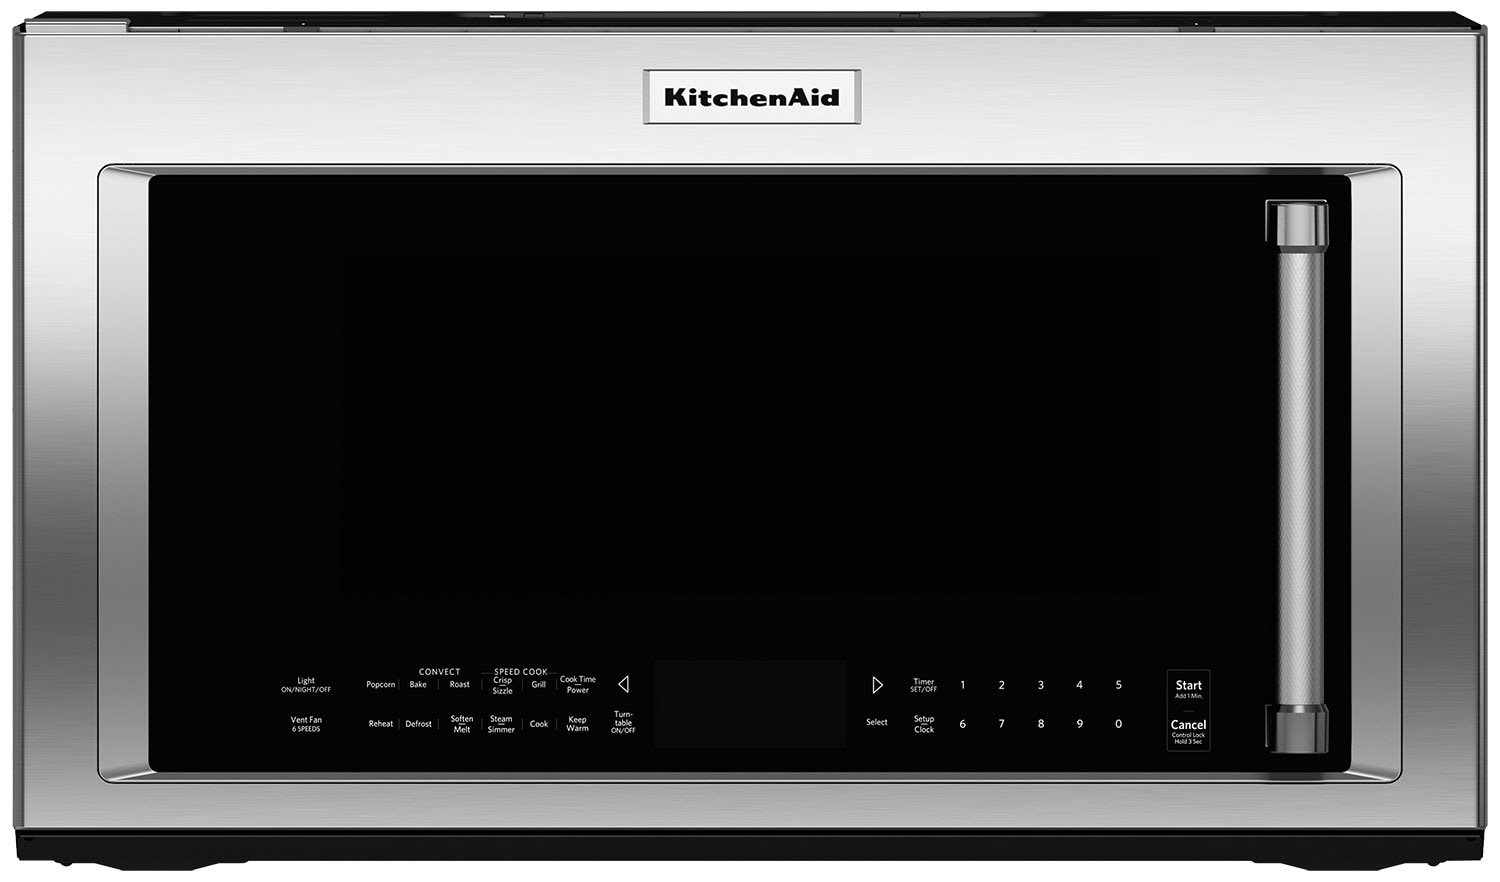 KitchenAid 1.9 Cu. Ft. Convection Microwave with High-Speed Cooking - Stainless Steel